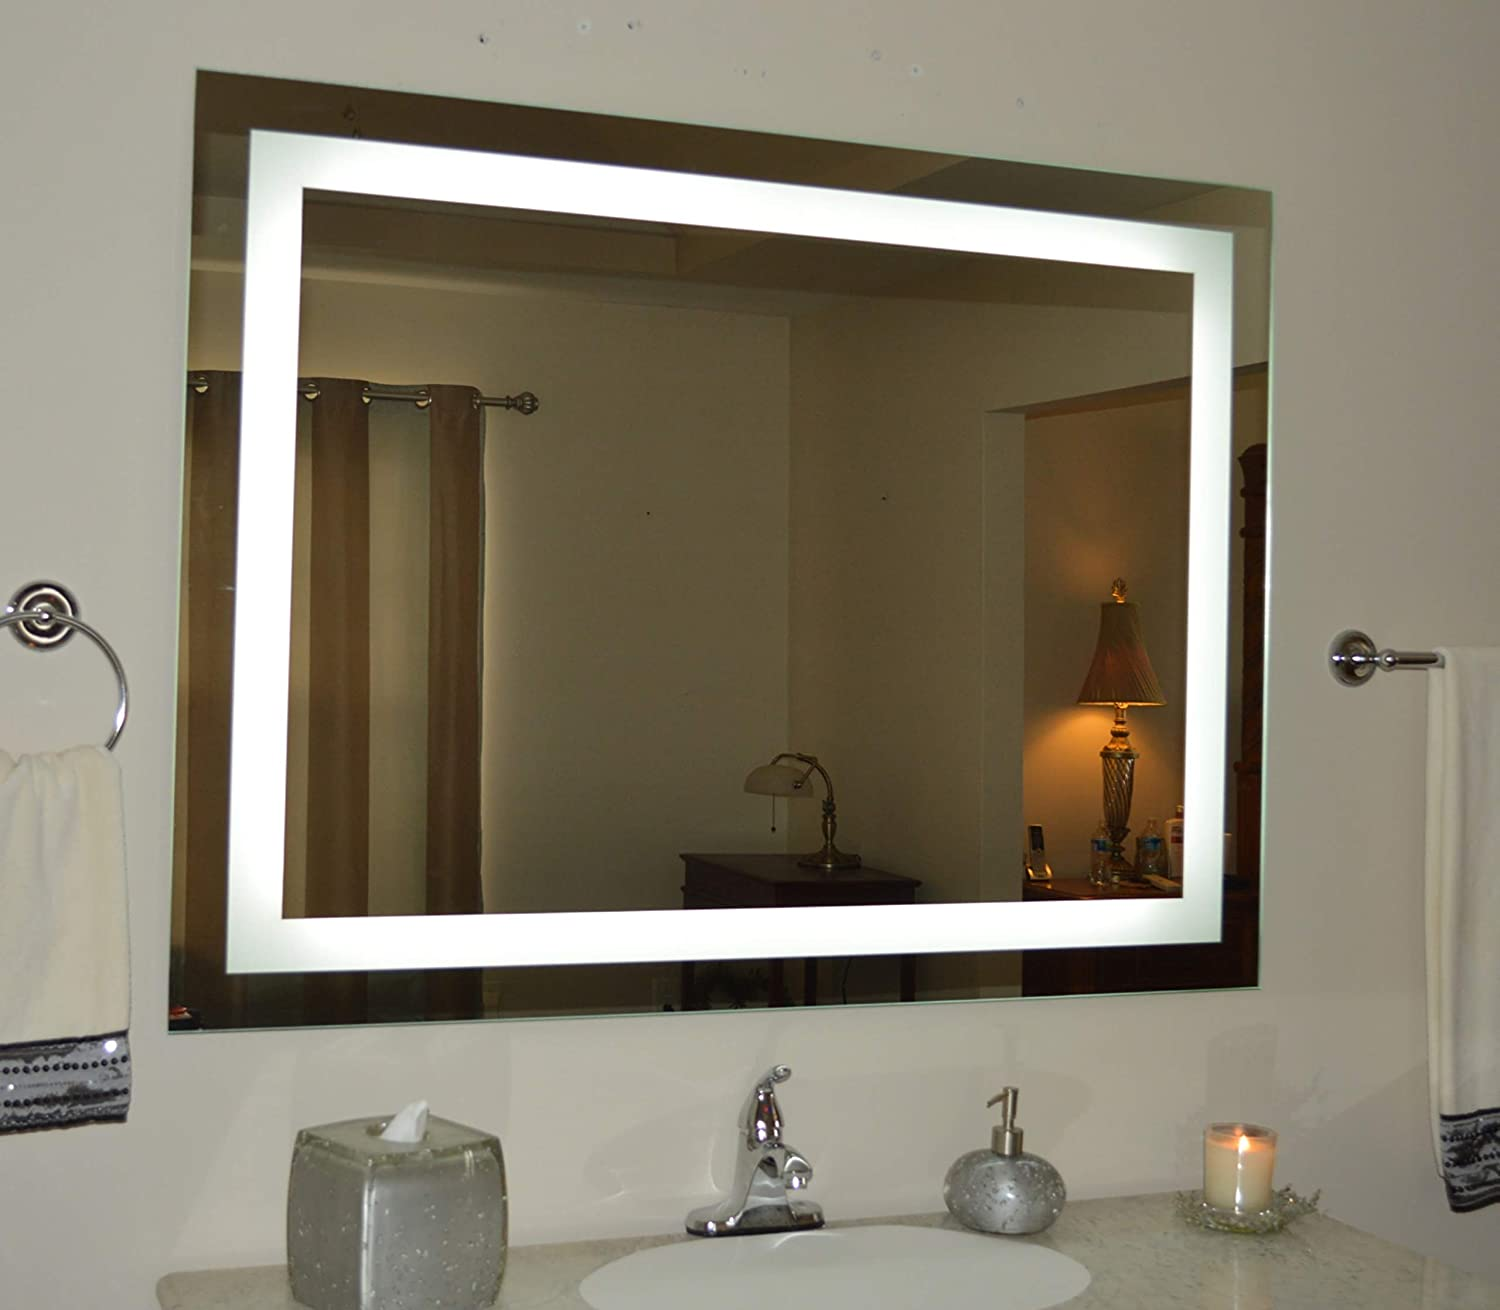 Amazon.com: Wall Mounted Lighted Vanity Mirror LED MAM84836 ...